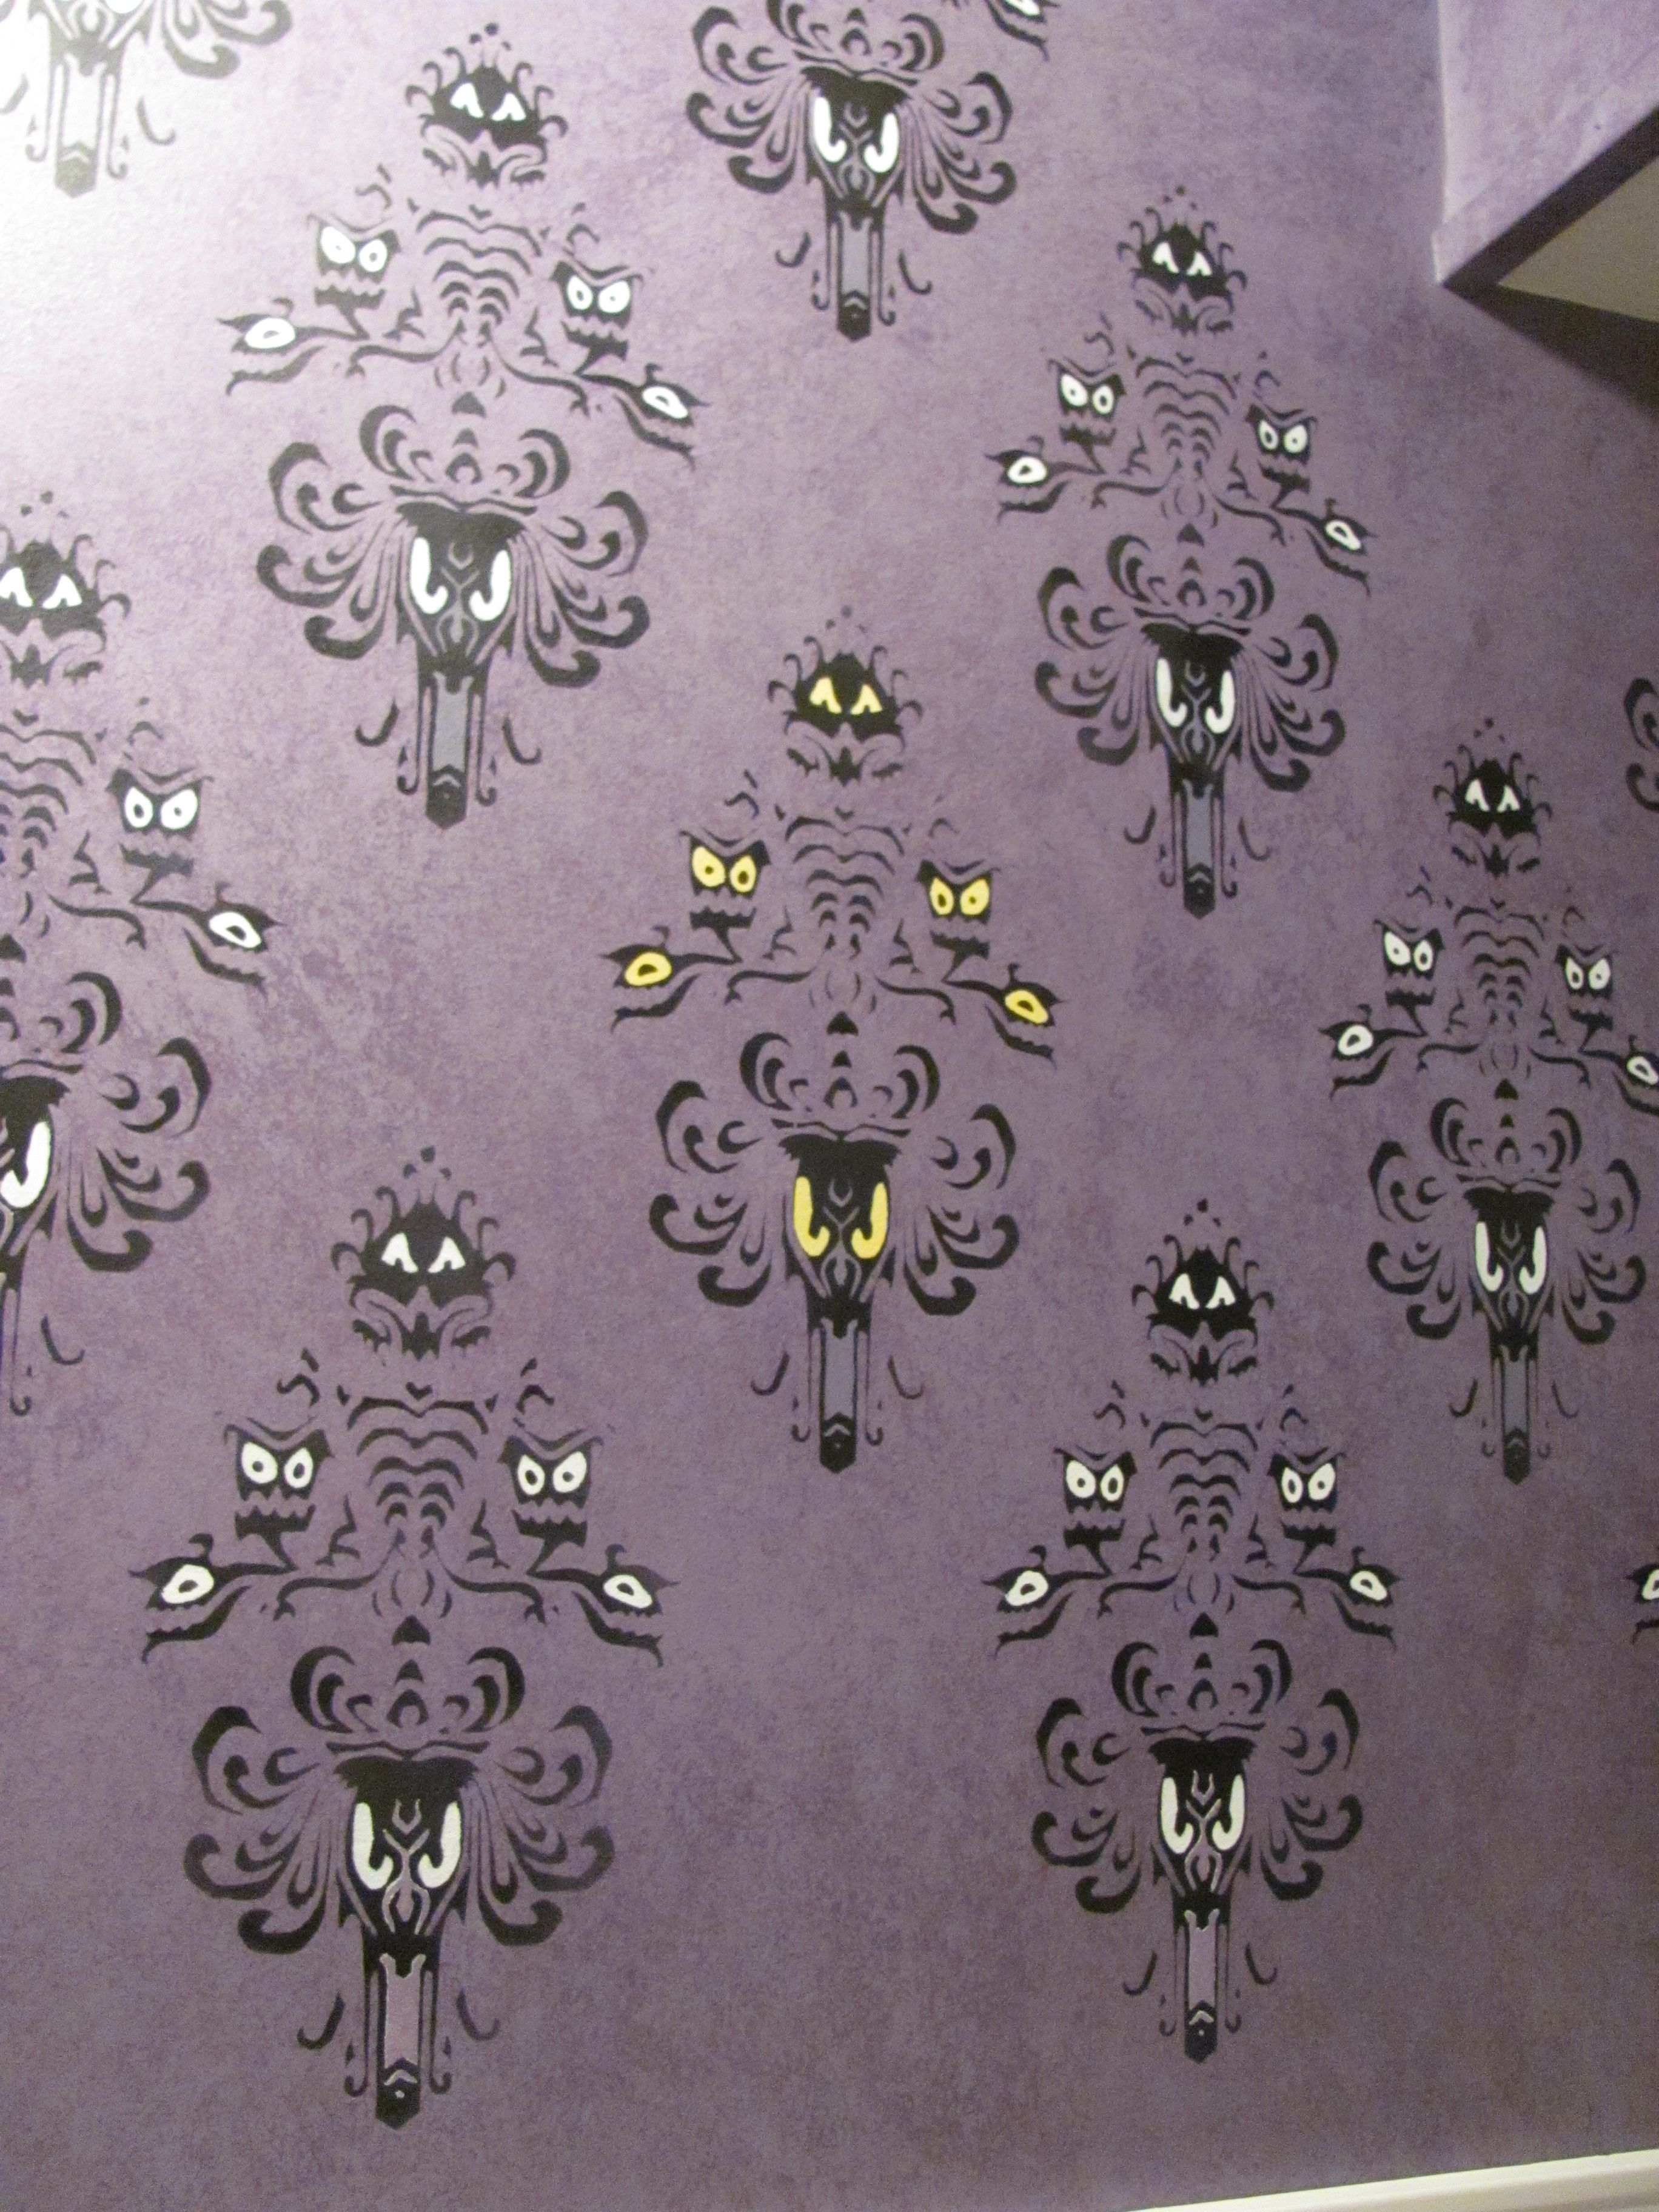 I Couldn T Find Or Afford Haunted Mansion Wallpaper So I Made My Own Stencil Haunted Mansion Decor Haunted Mansion Wallpaper Haunted Mansion Halloween